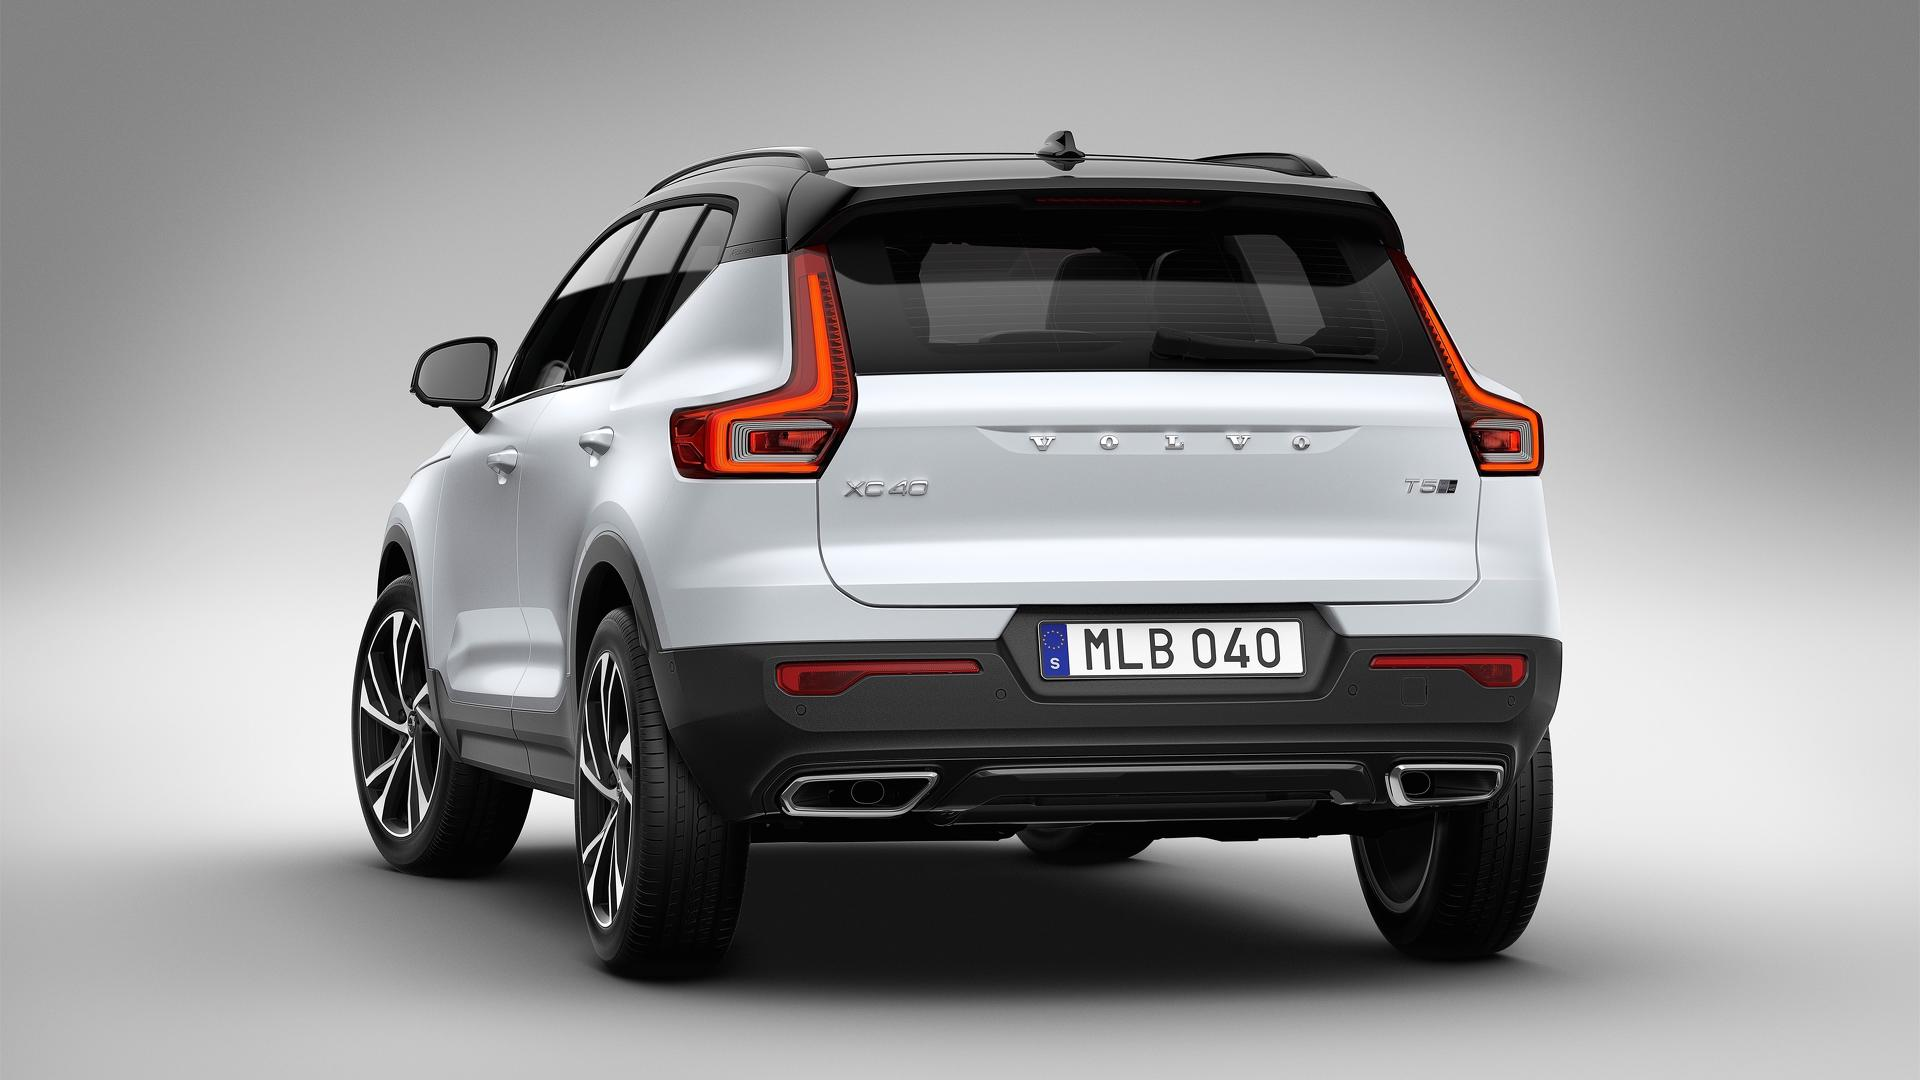 hybrid inscription ltd suv volvo vehicle solutions prices adaptive